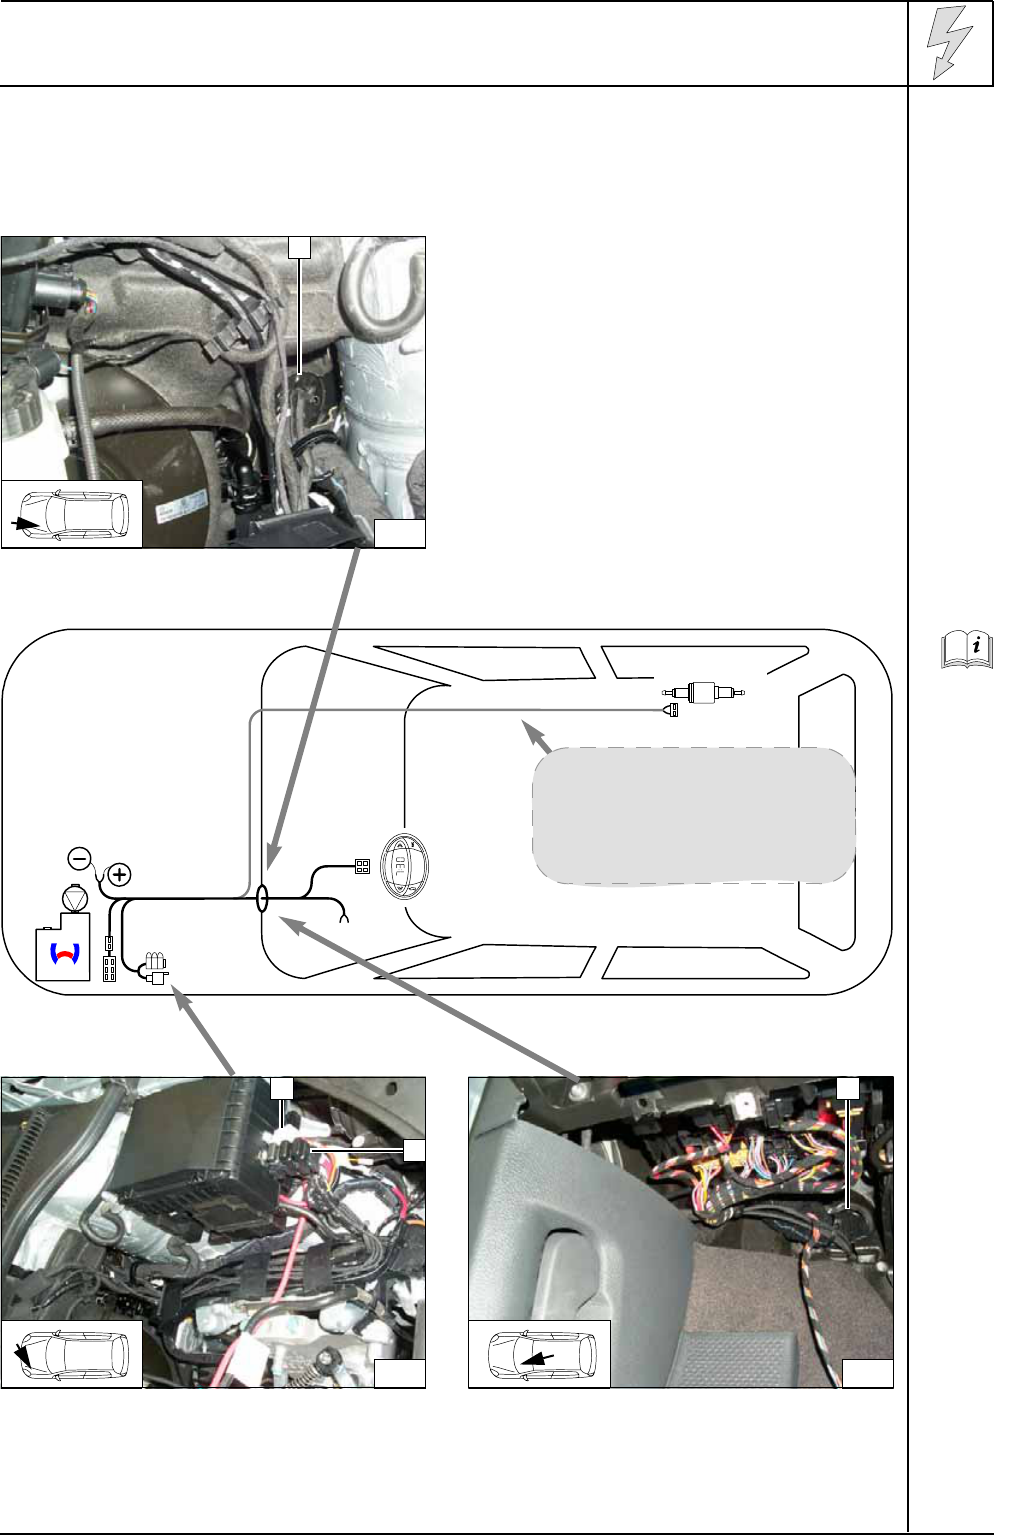 Volkswagen Touran 2006 Misc Documents Webasto Installation Vw Wiring Diagram Pdf Instructions